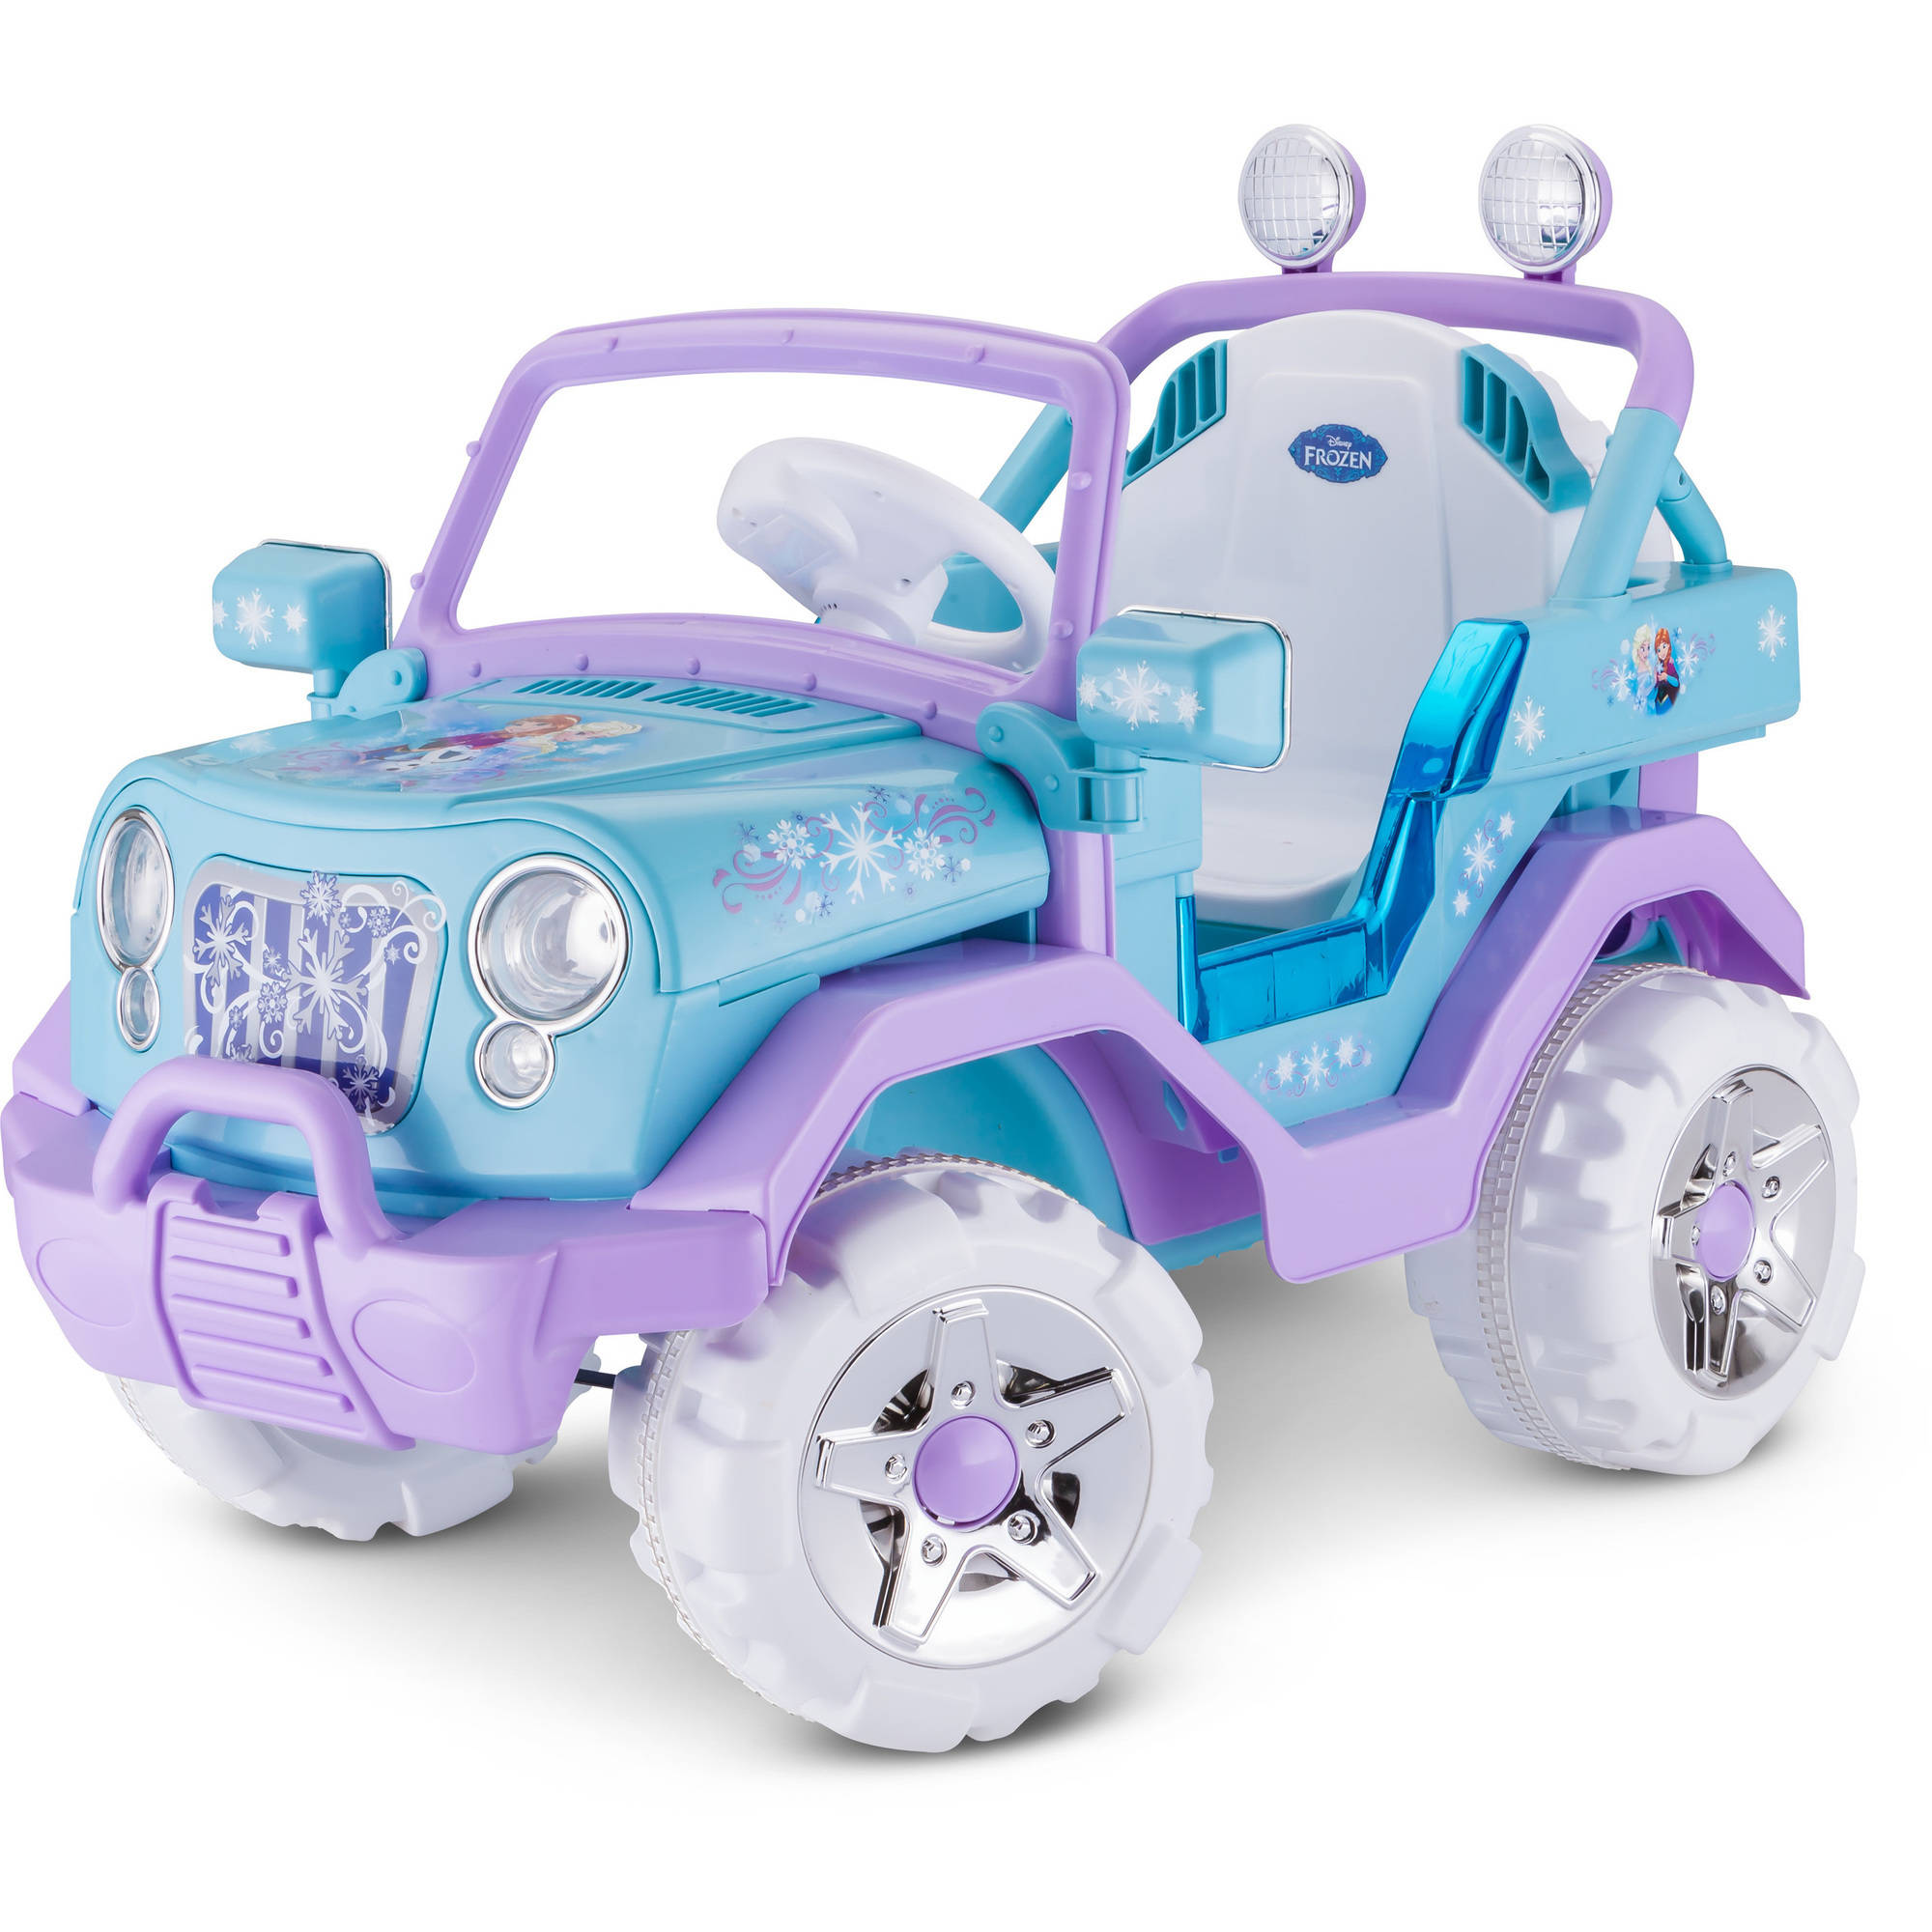 Kid Trax Disney Frozen 4x4 6V Ride-On, Blue Purple by Pacific Cycle